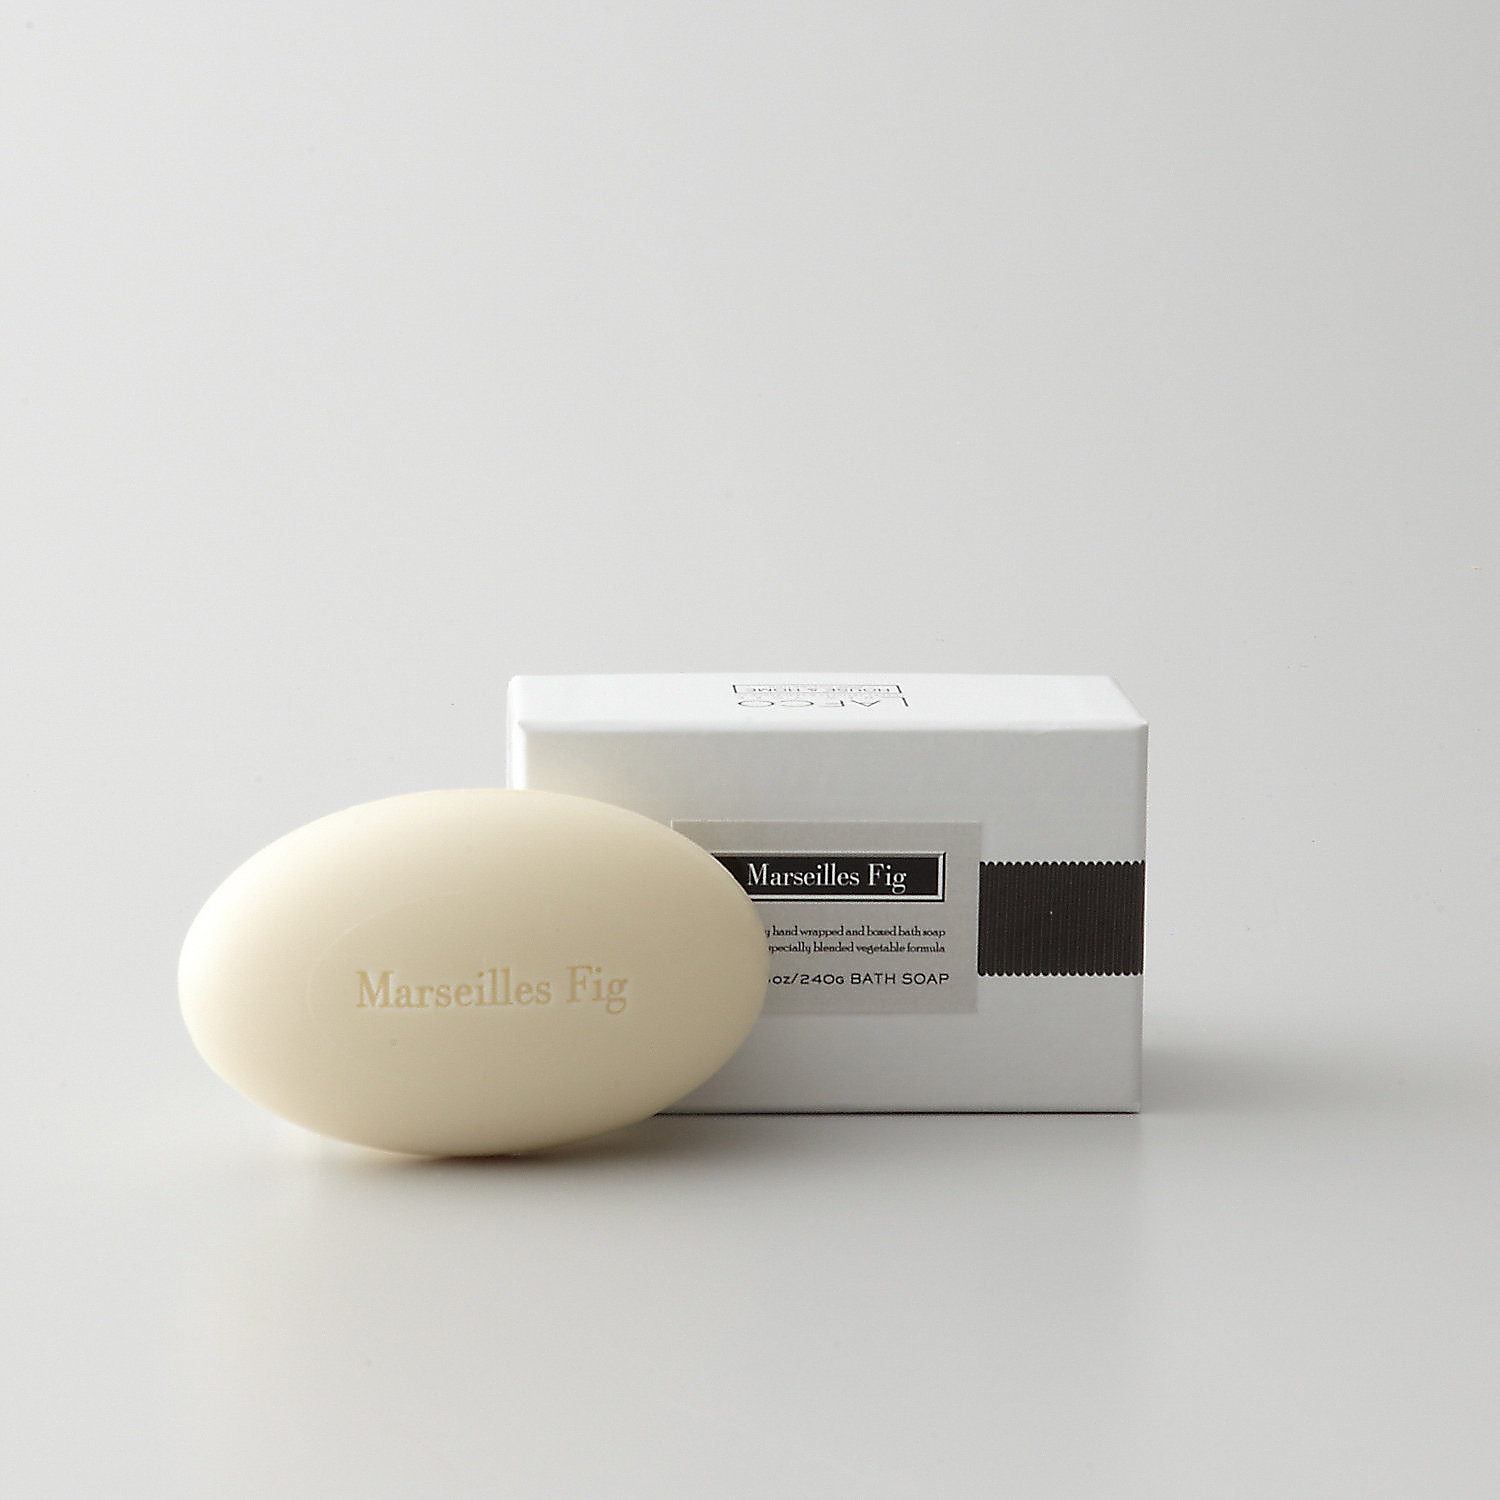 BATH SOAP - MARSAILLES FIG